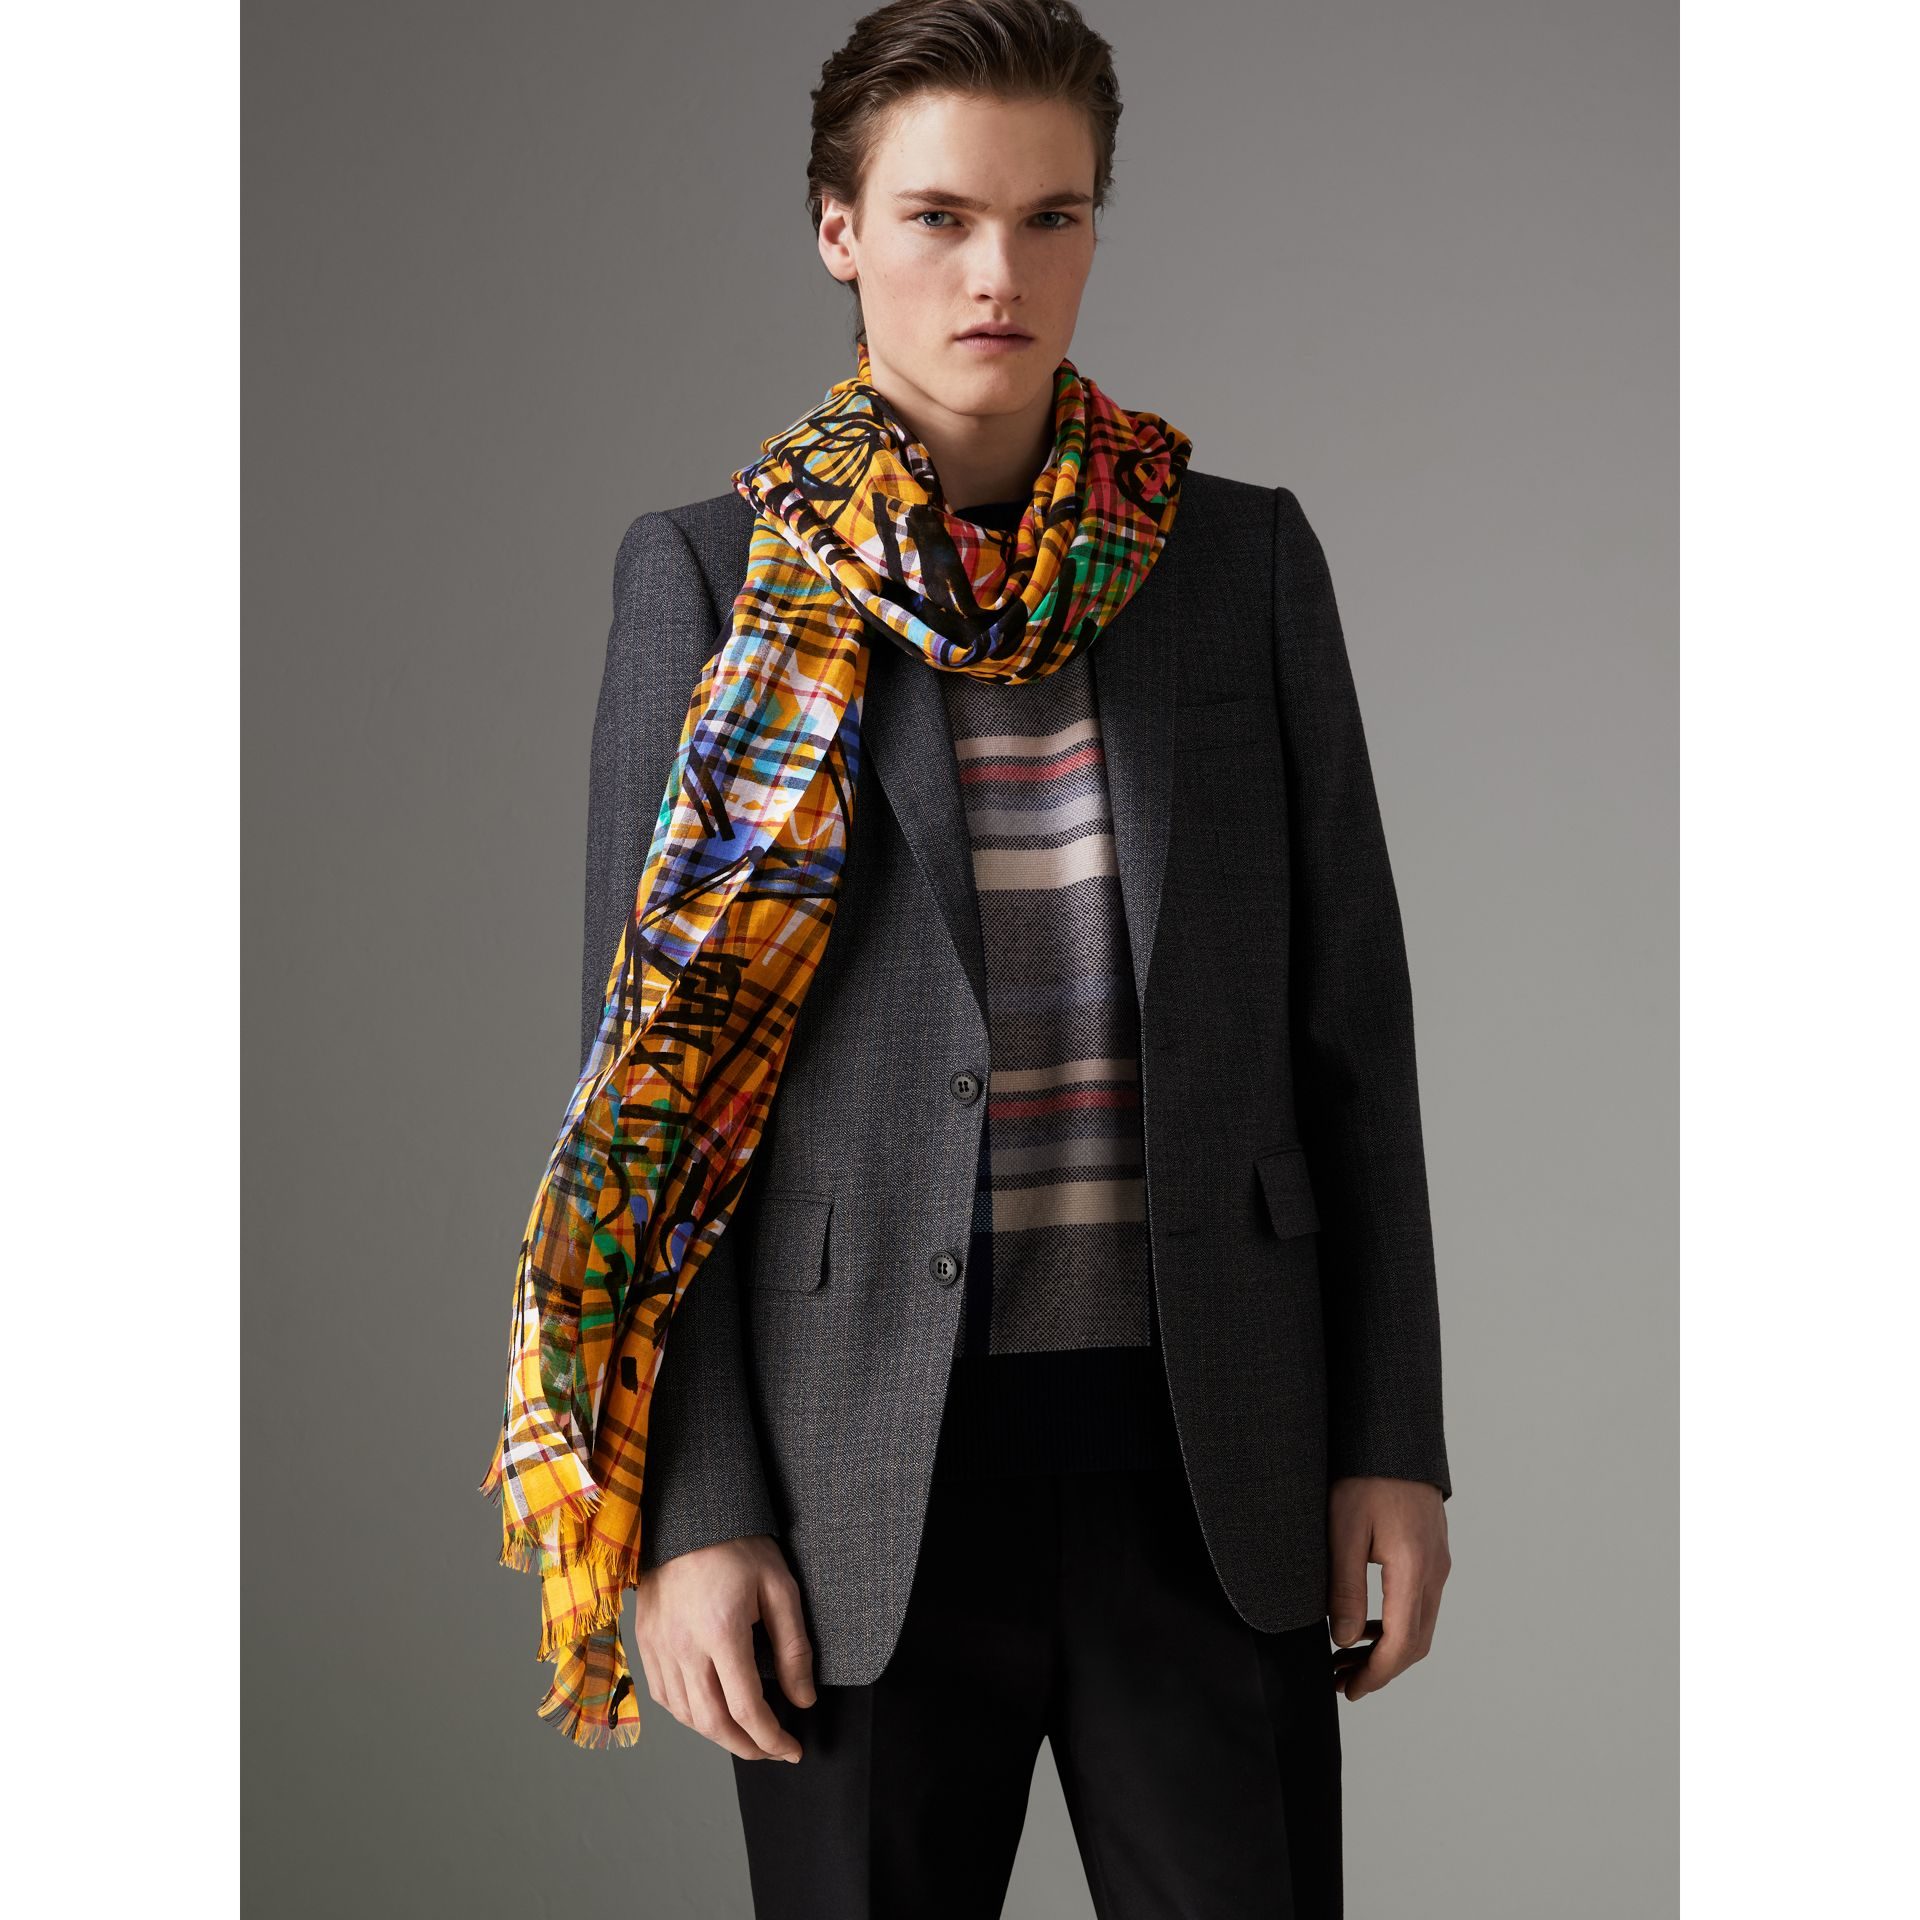 Graffiti Print Vintage Check Wool Silk Scarf in Amber Yellow | Burberry United Kingdom - gallery image 3